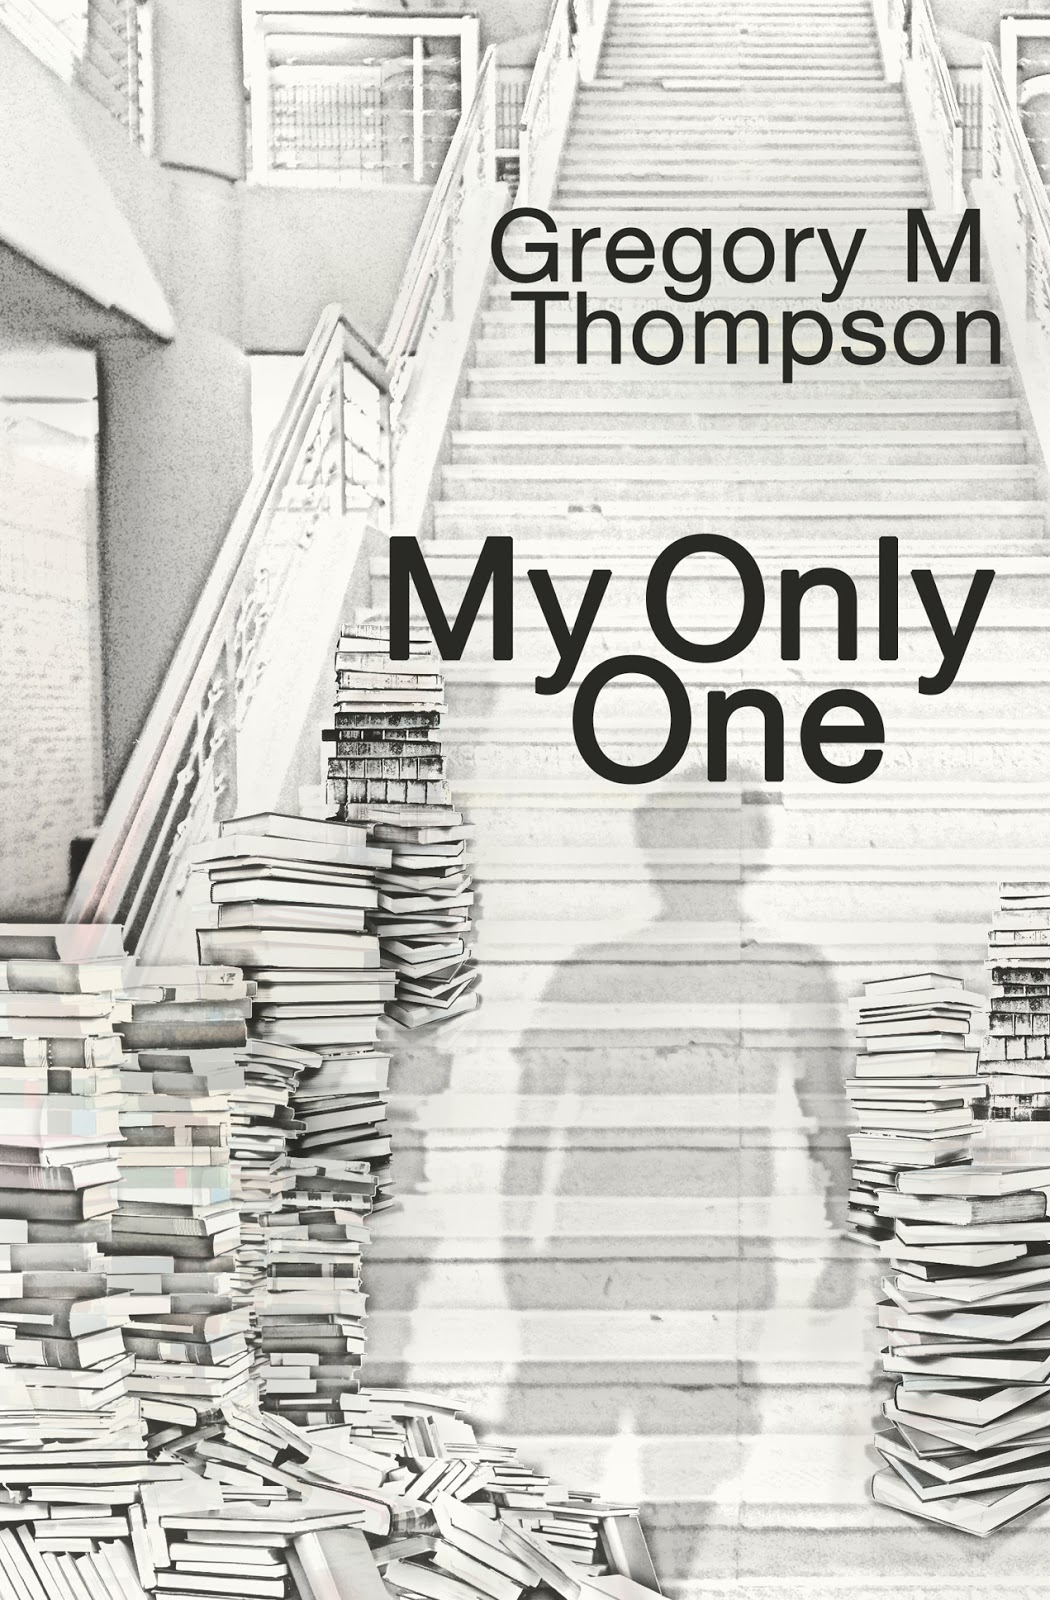 http://www.amazon.com/My-Only-One-Gregory-Thompson-ebook/dp/B00BF6KTX6